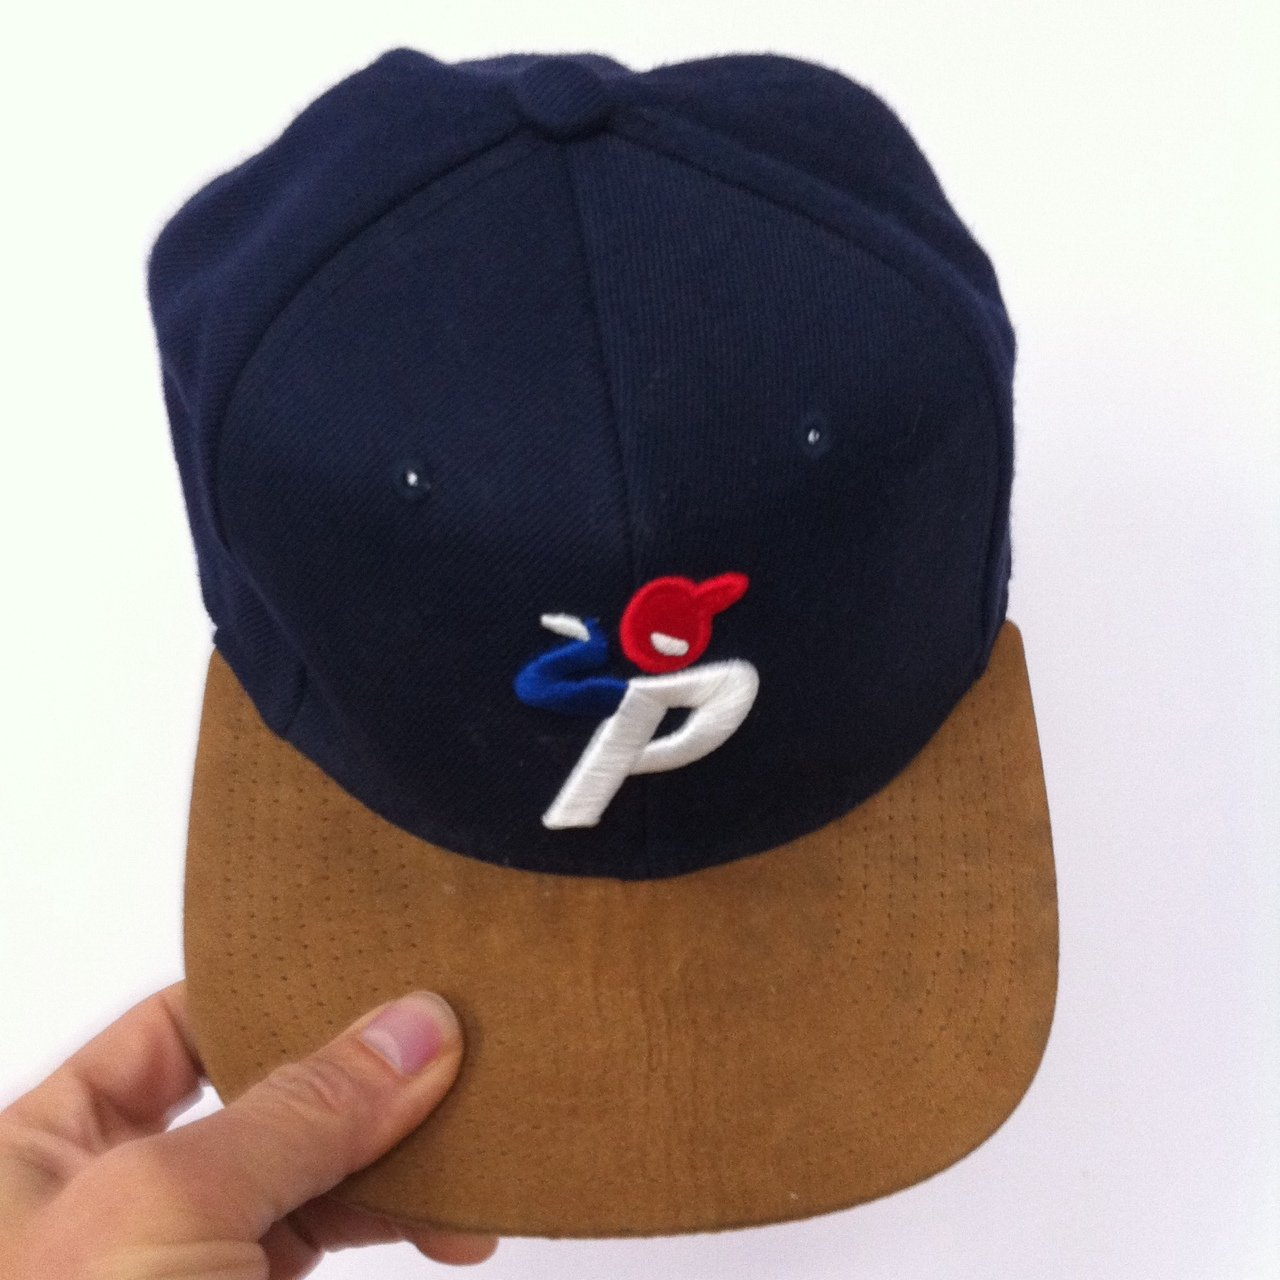 a1fb1b1a294 Just found this Palace baseball cap in my wardrobe😳😳in and - Depop